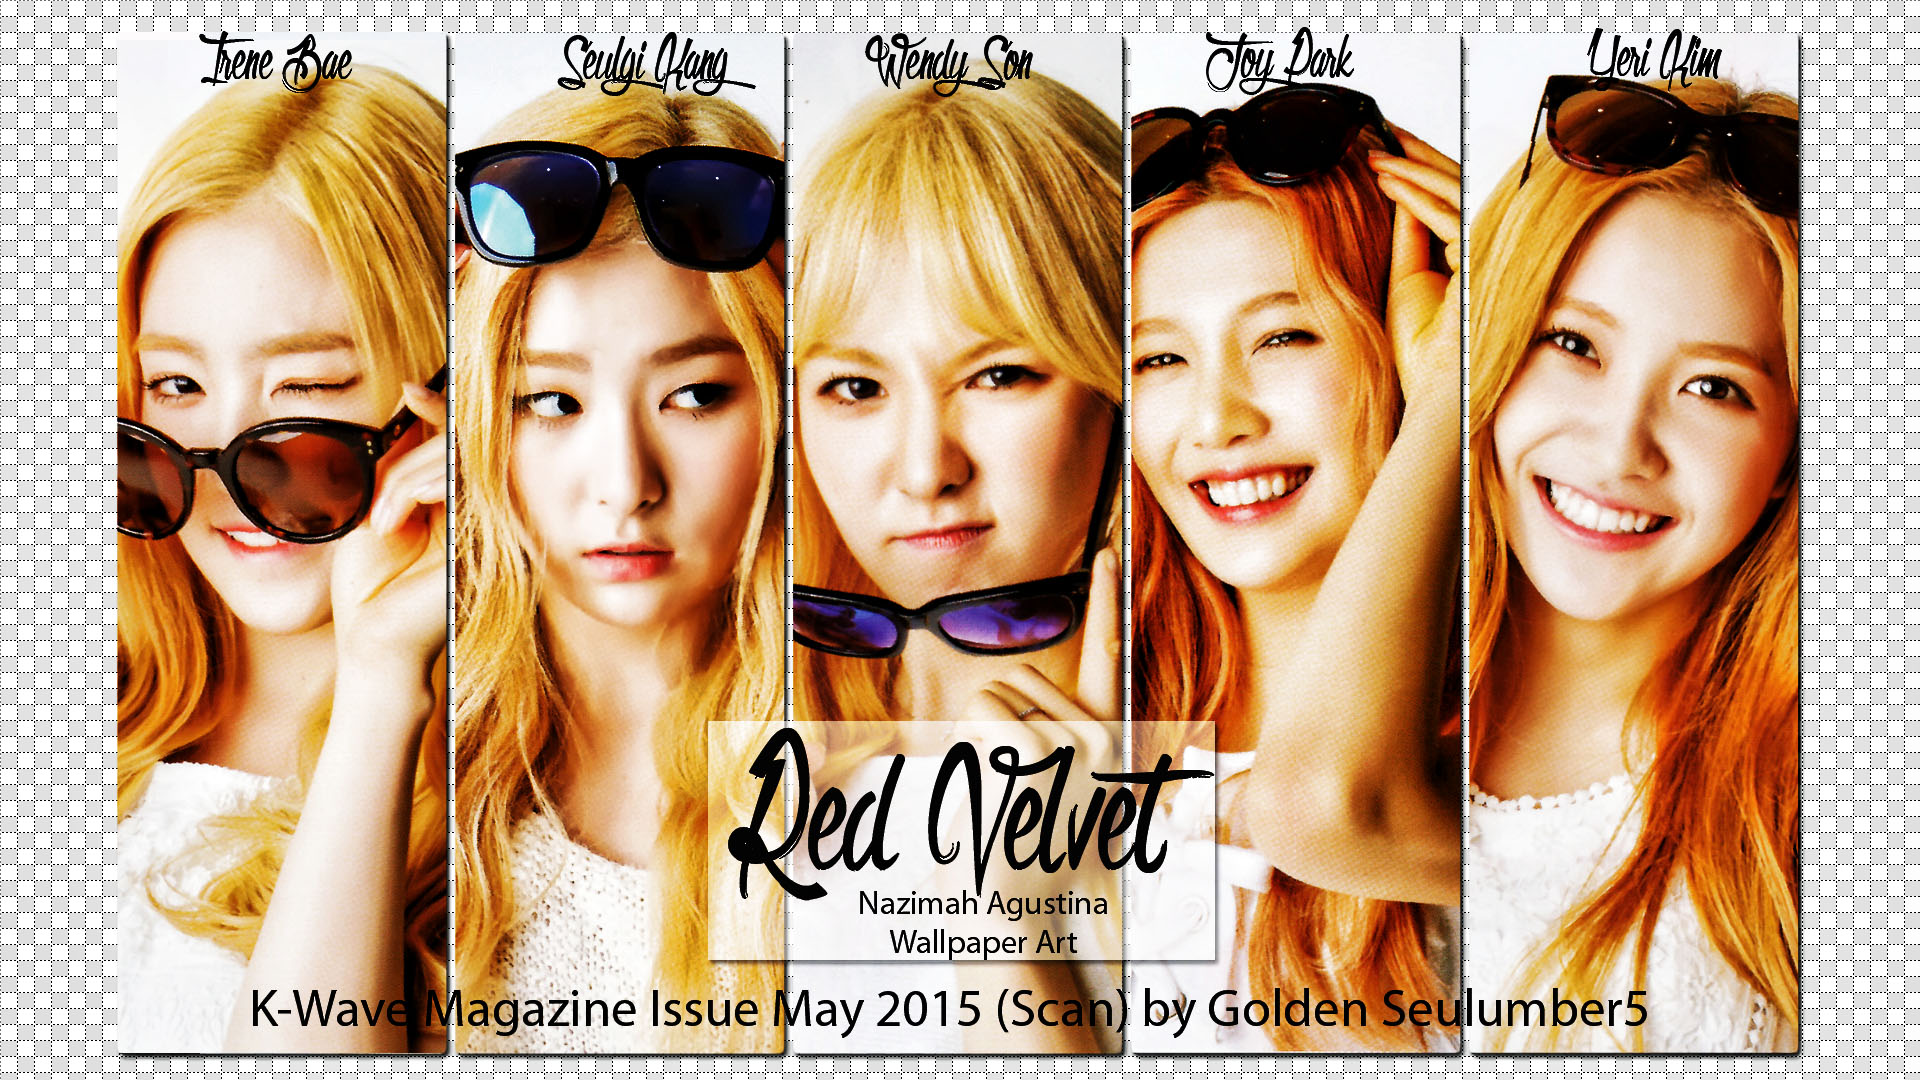 Red Velvet May Kwave Issue Wallpaper By Nazimah Agustina